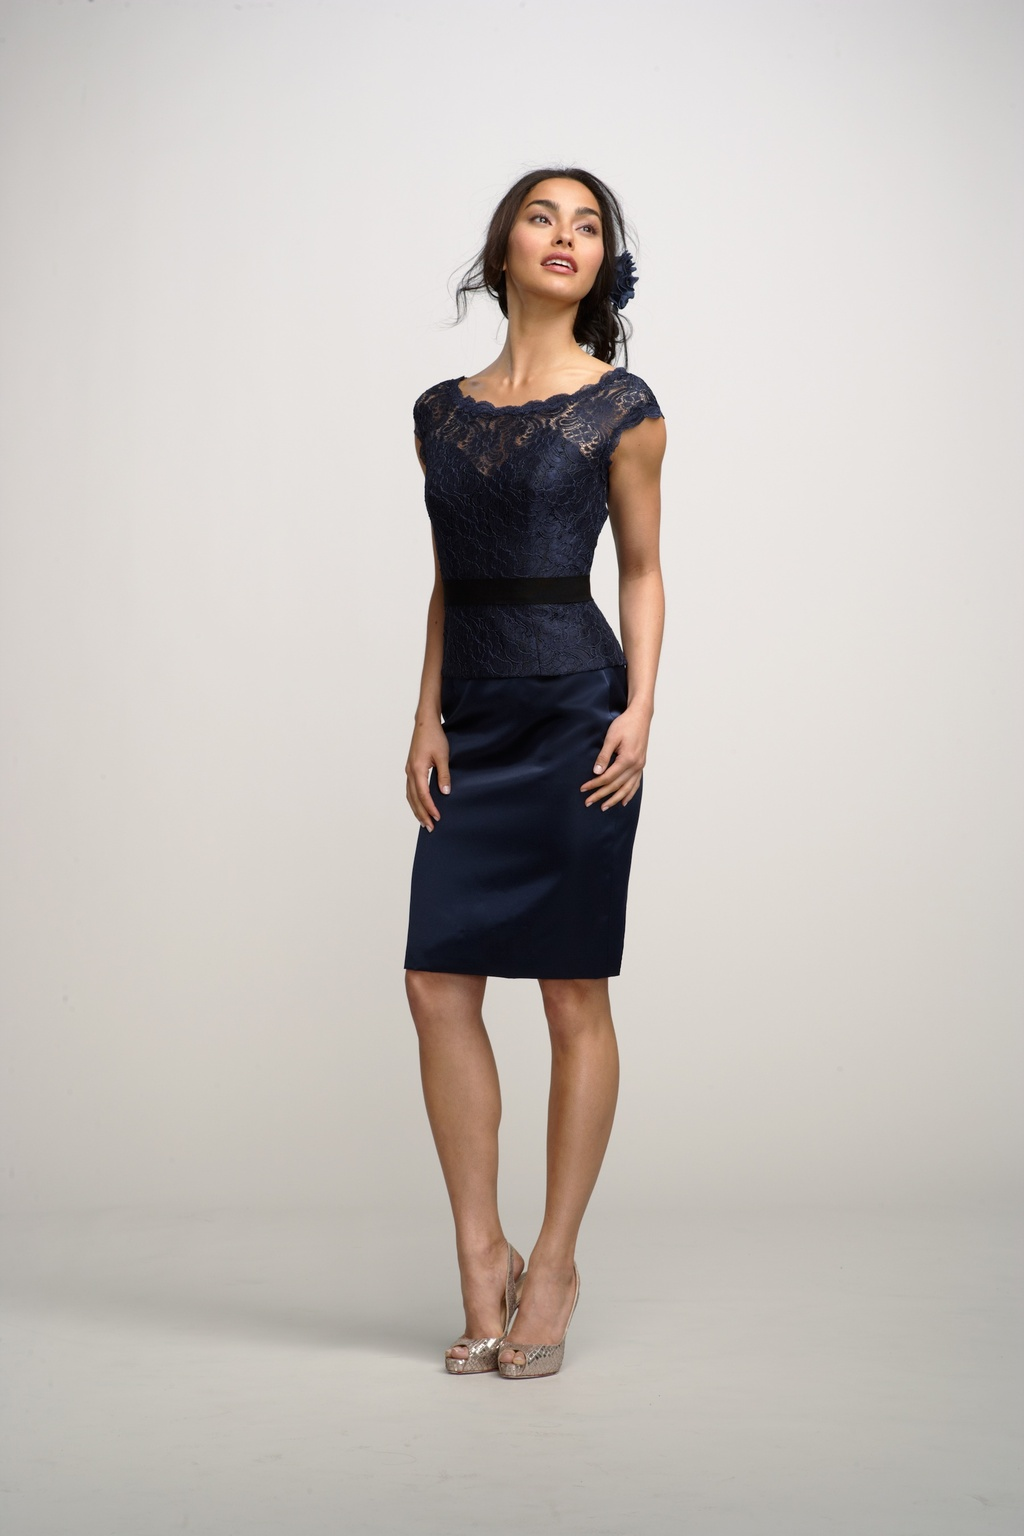 2012 bridesmaids dresses by watters bridesmaid gown LBD lace cap sleeves